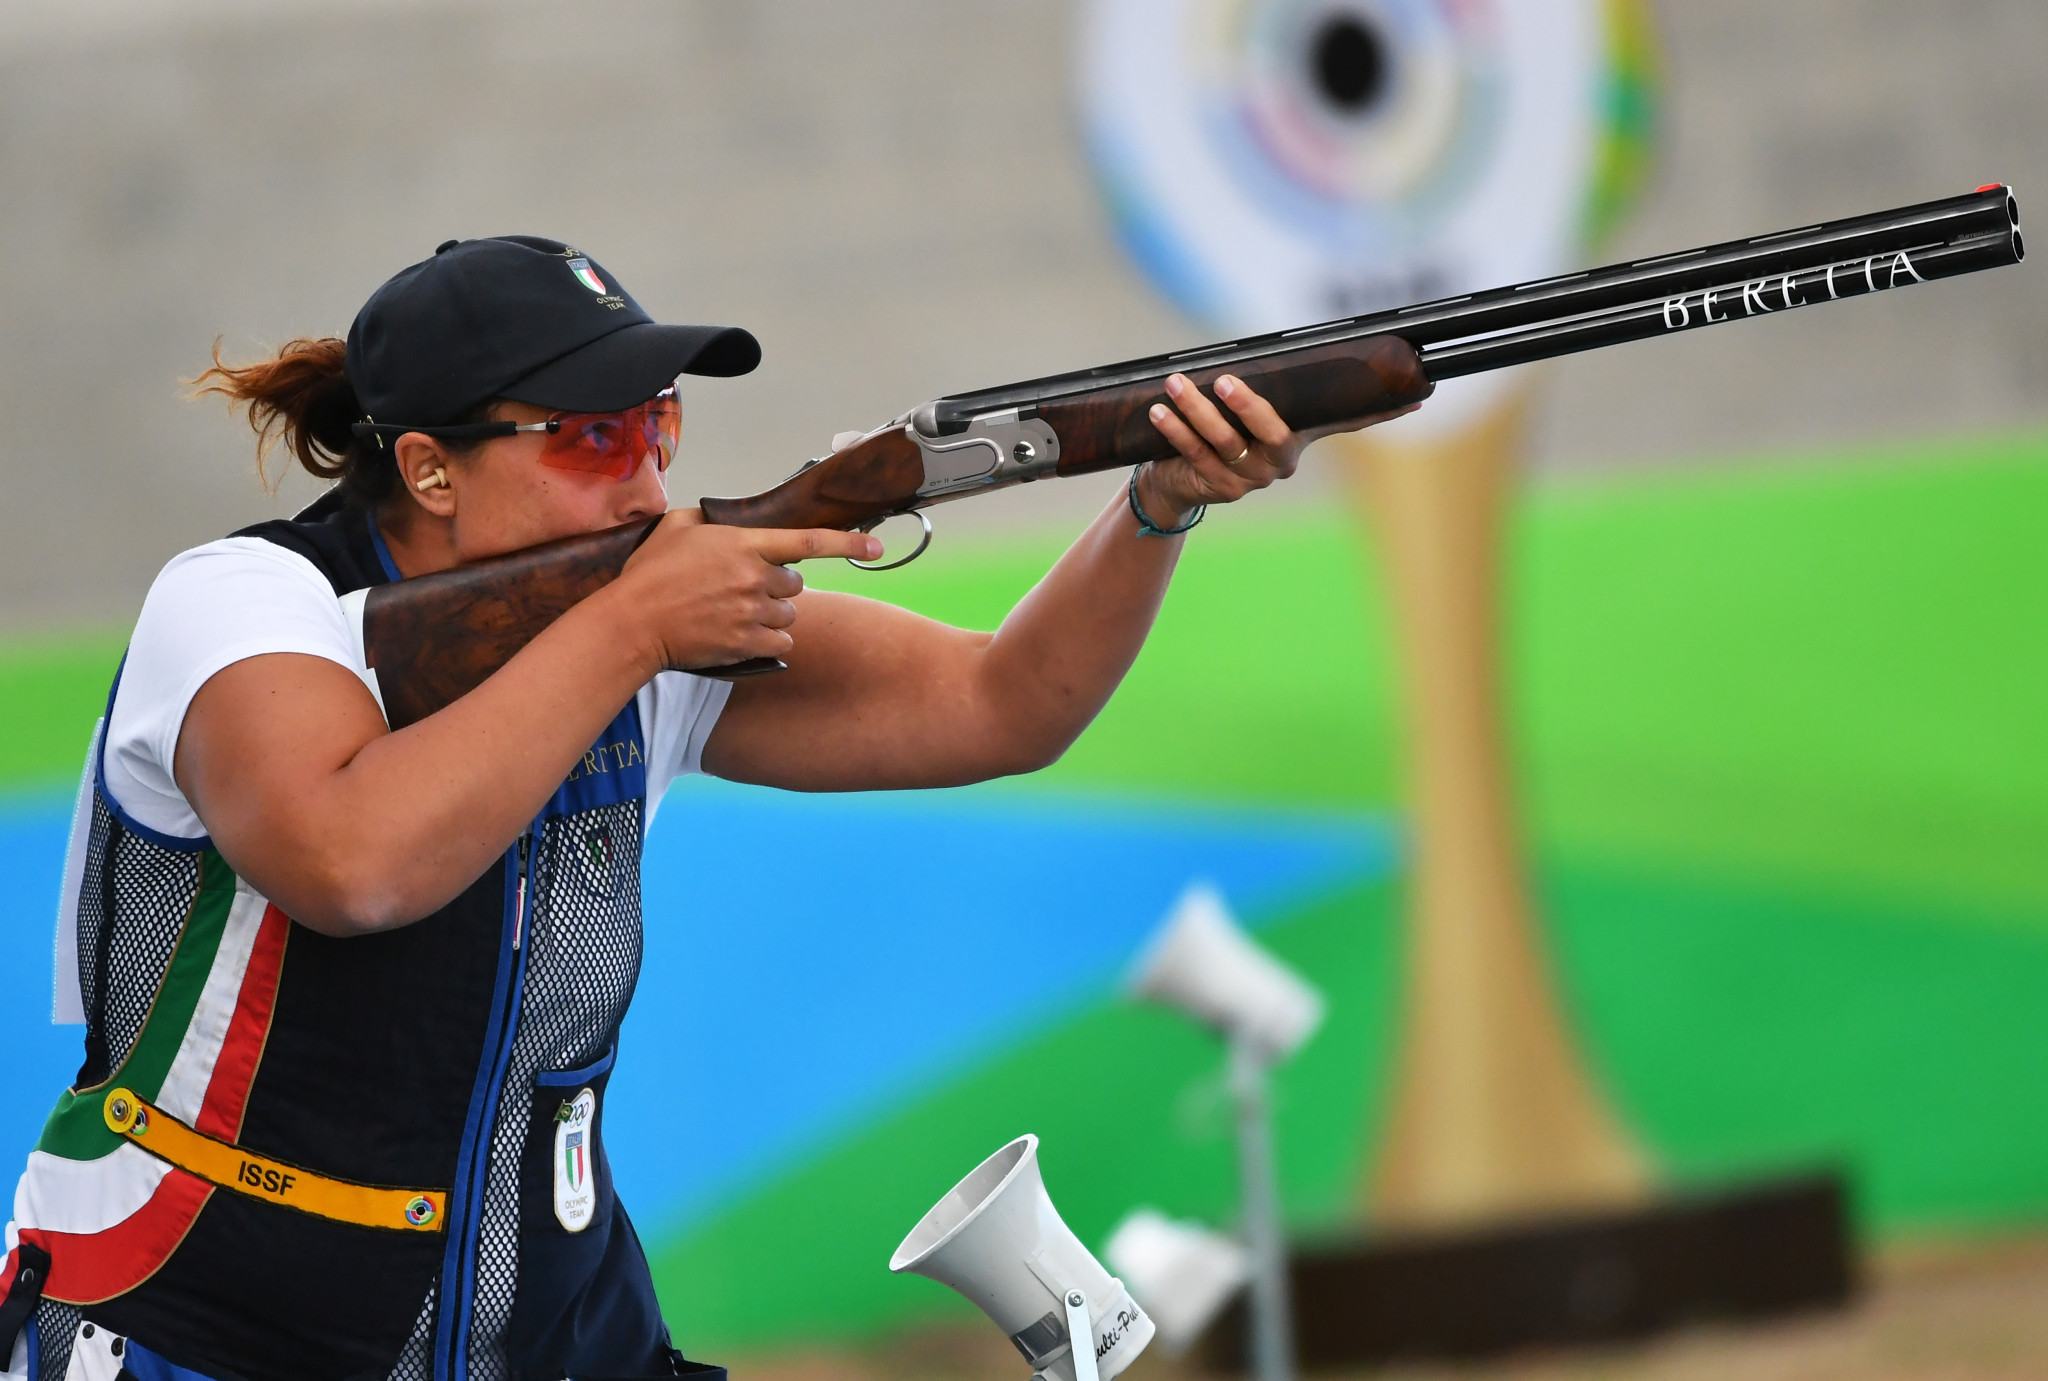 Olympic champion Diana Bacosi of Italy was third in women's skeet qualifying at the ISSF Shotgun World Cup ©Getty Images